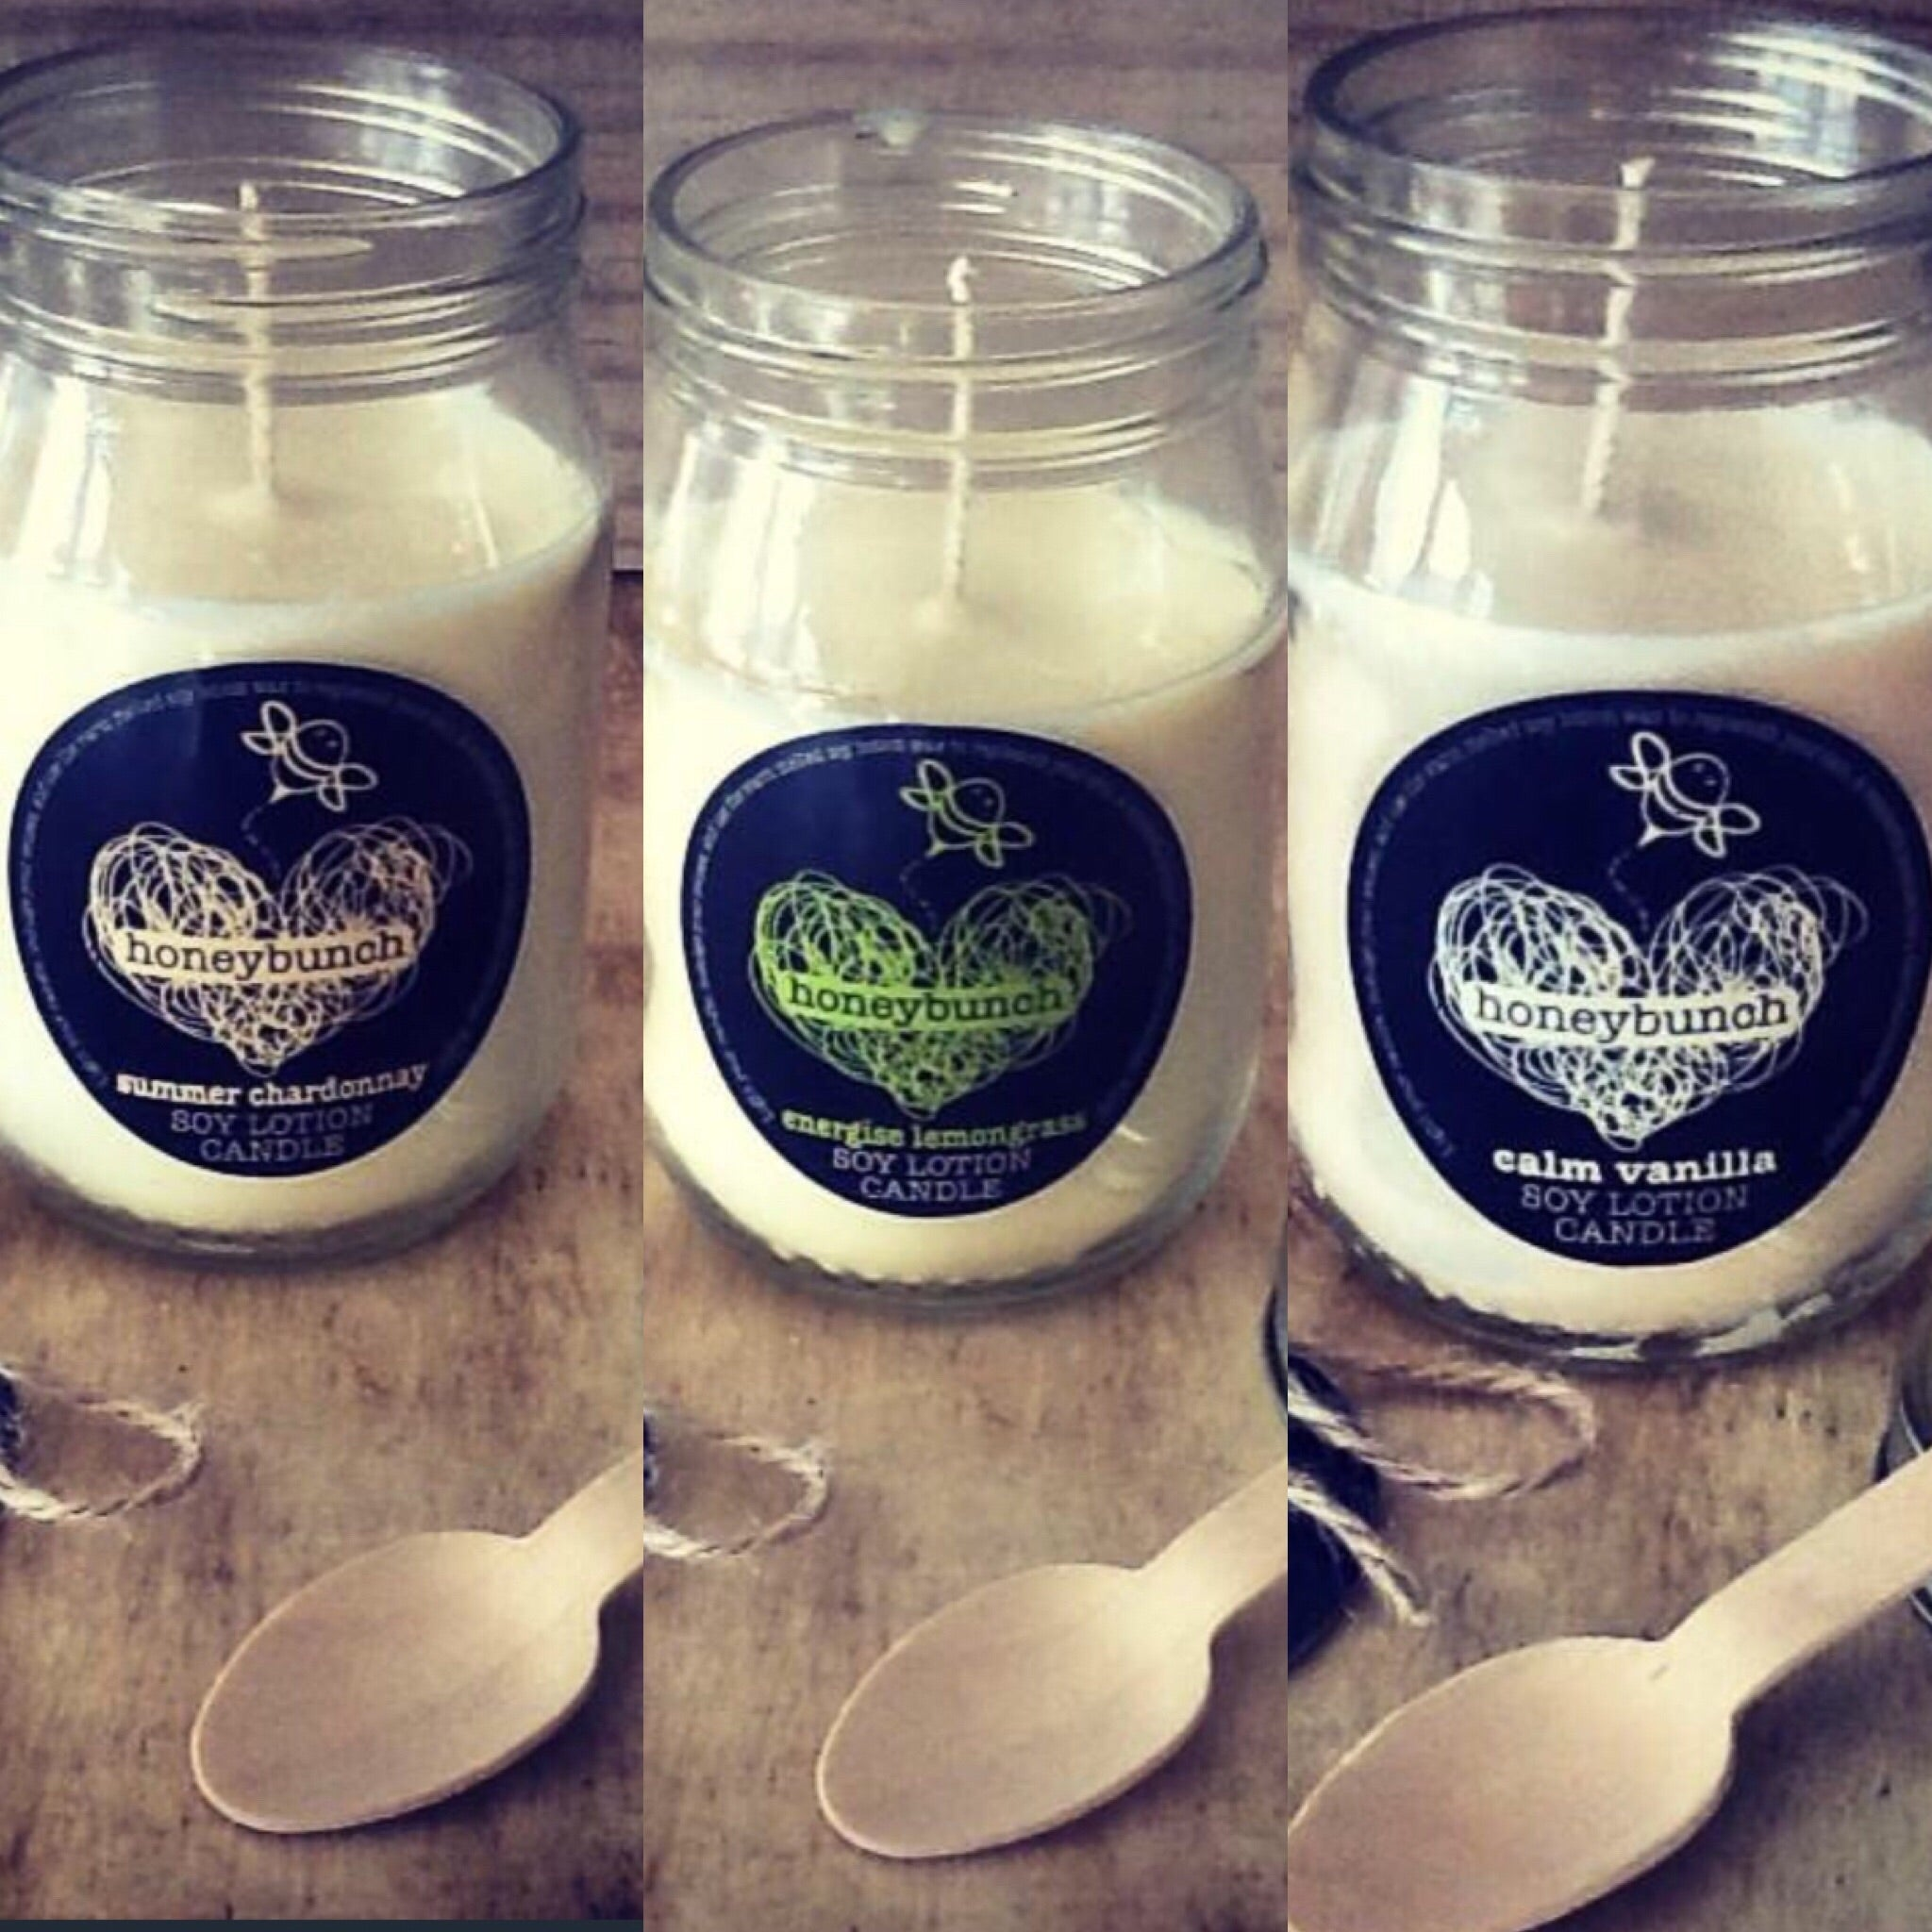 Let's get lit soy lotion candle trio!